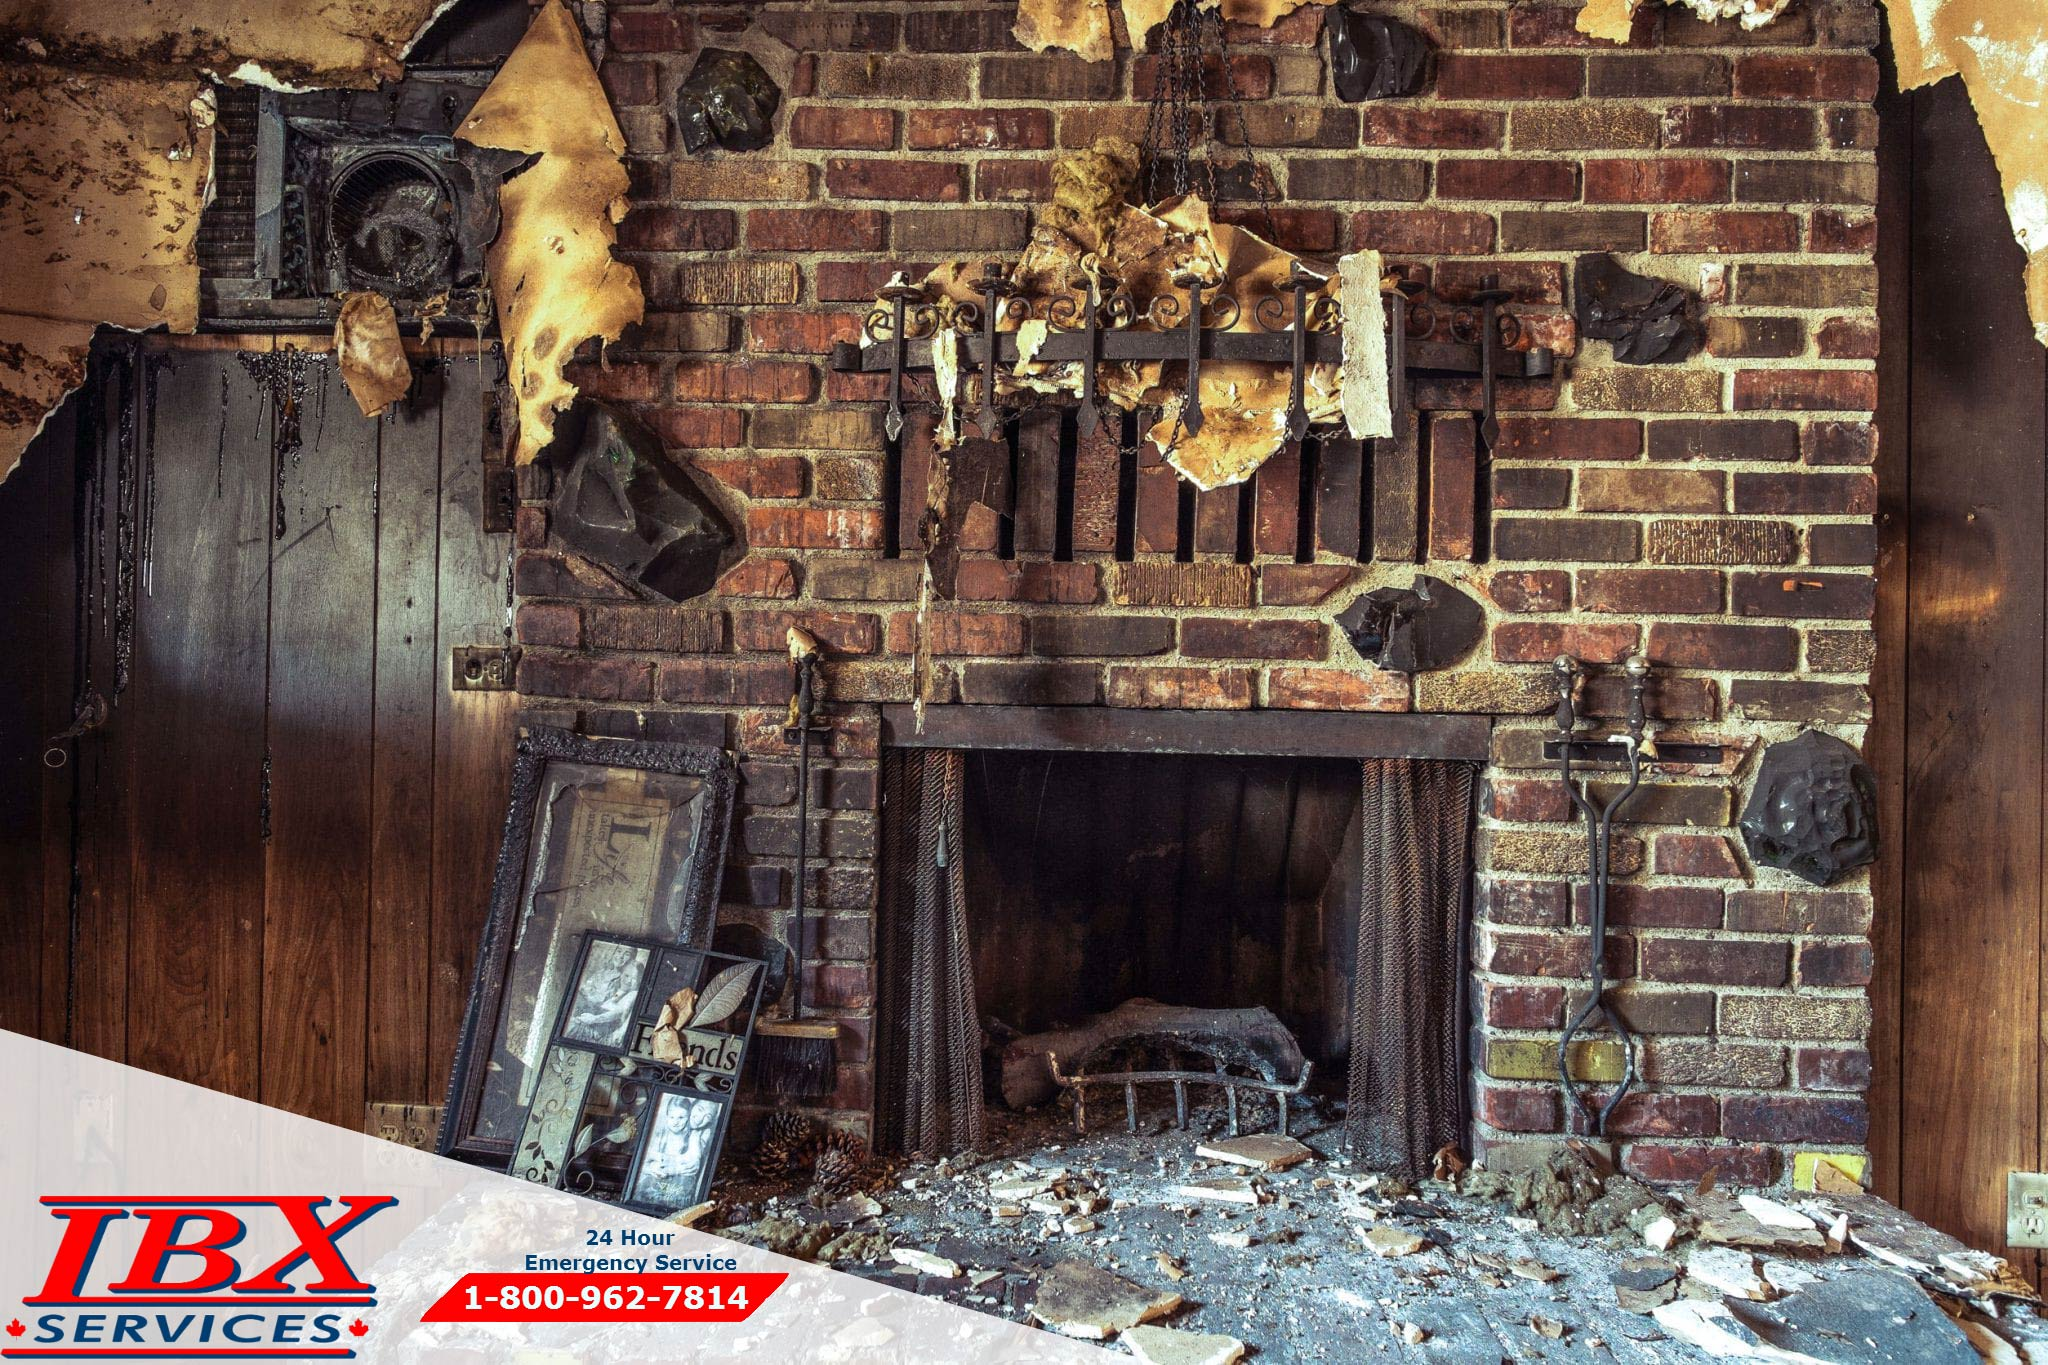 The process of fire damage restoration